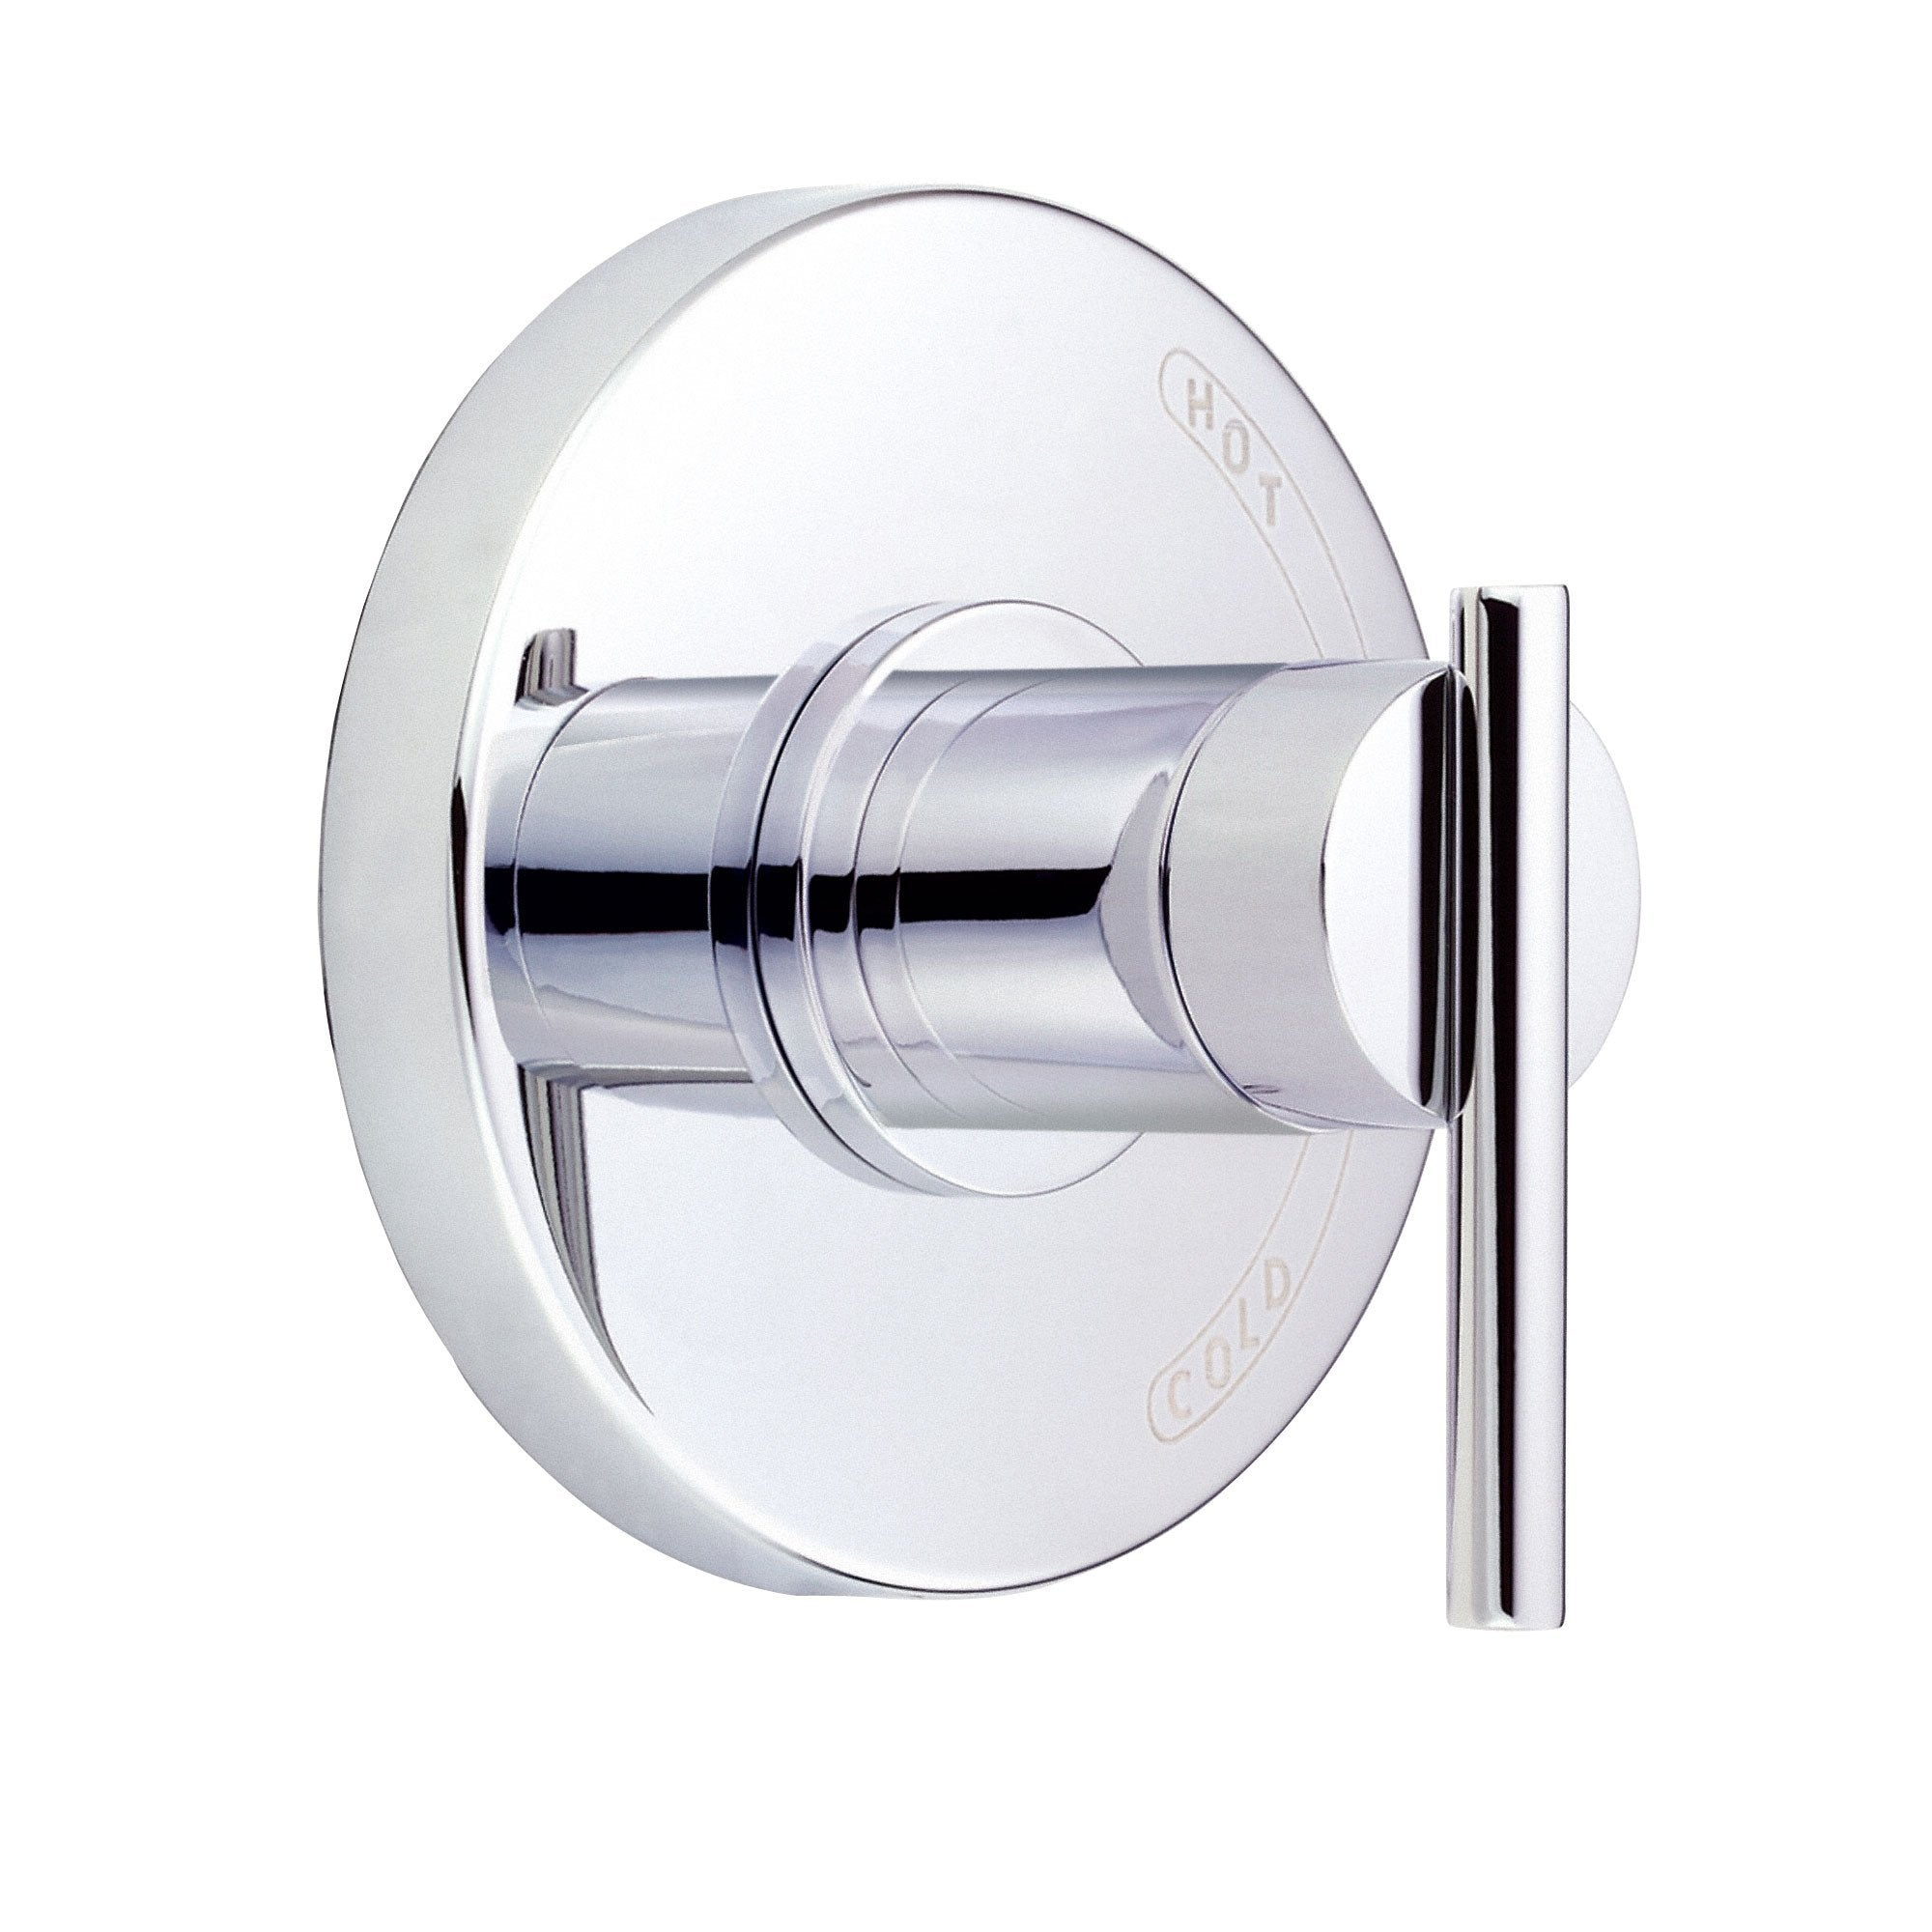 Danze Parma Chrome Modern Single Handle Shower Faucet Control INCLUDES Rough-in Valve